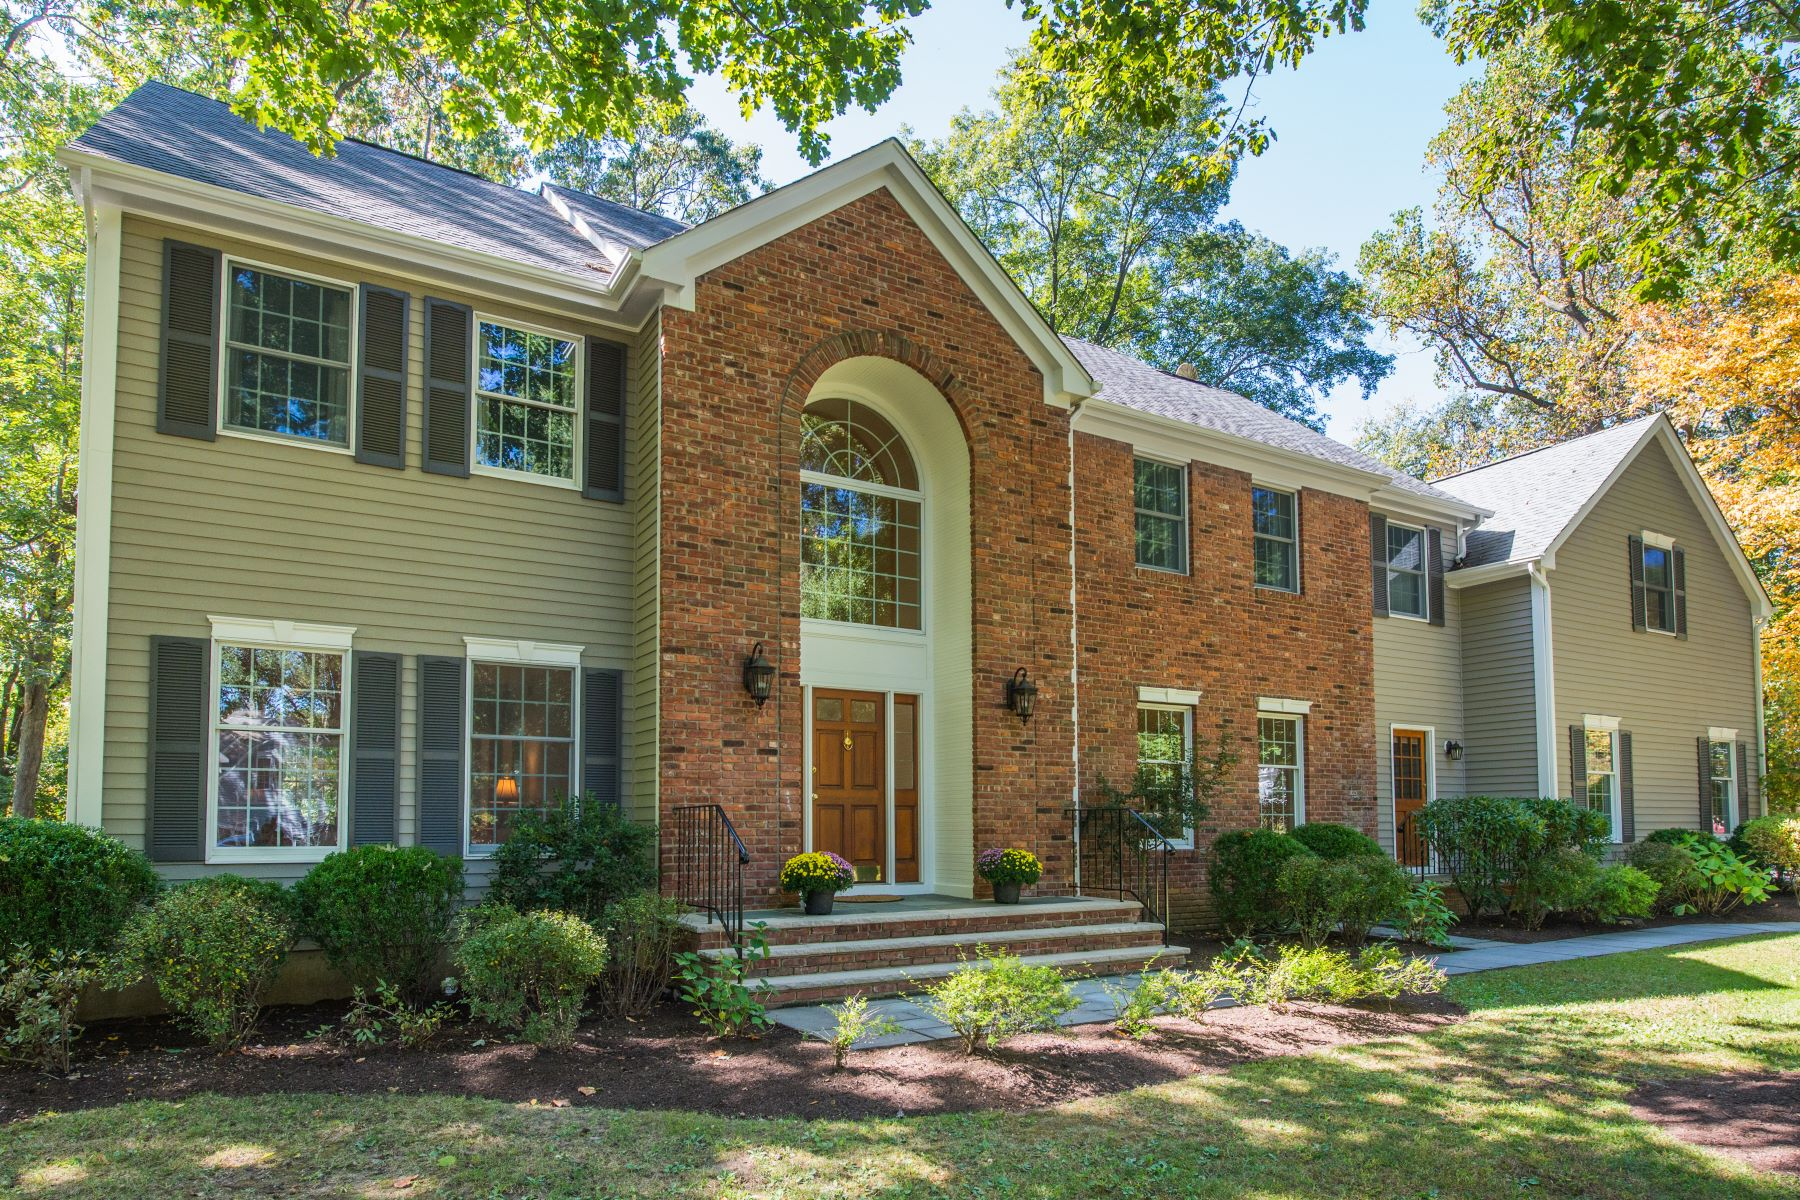 Single Family Homes for Active at Custom Caplan Colonial 3 Croydon Road Morris Township, New Jersey 07960 United States